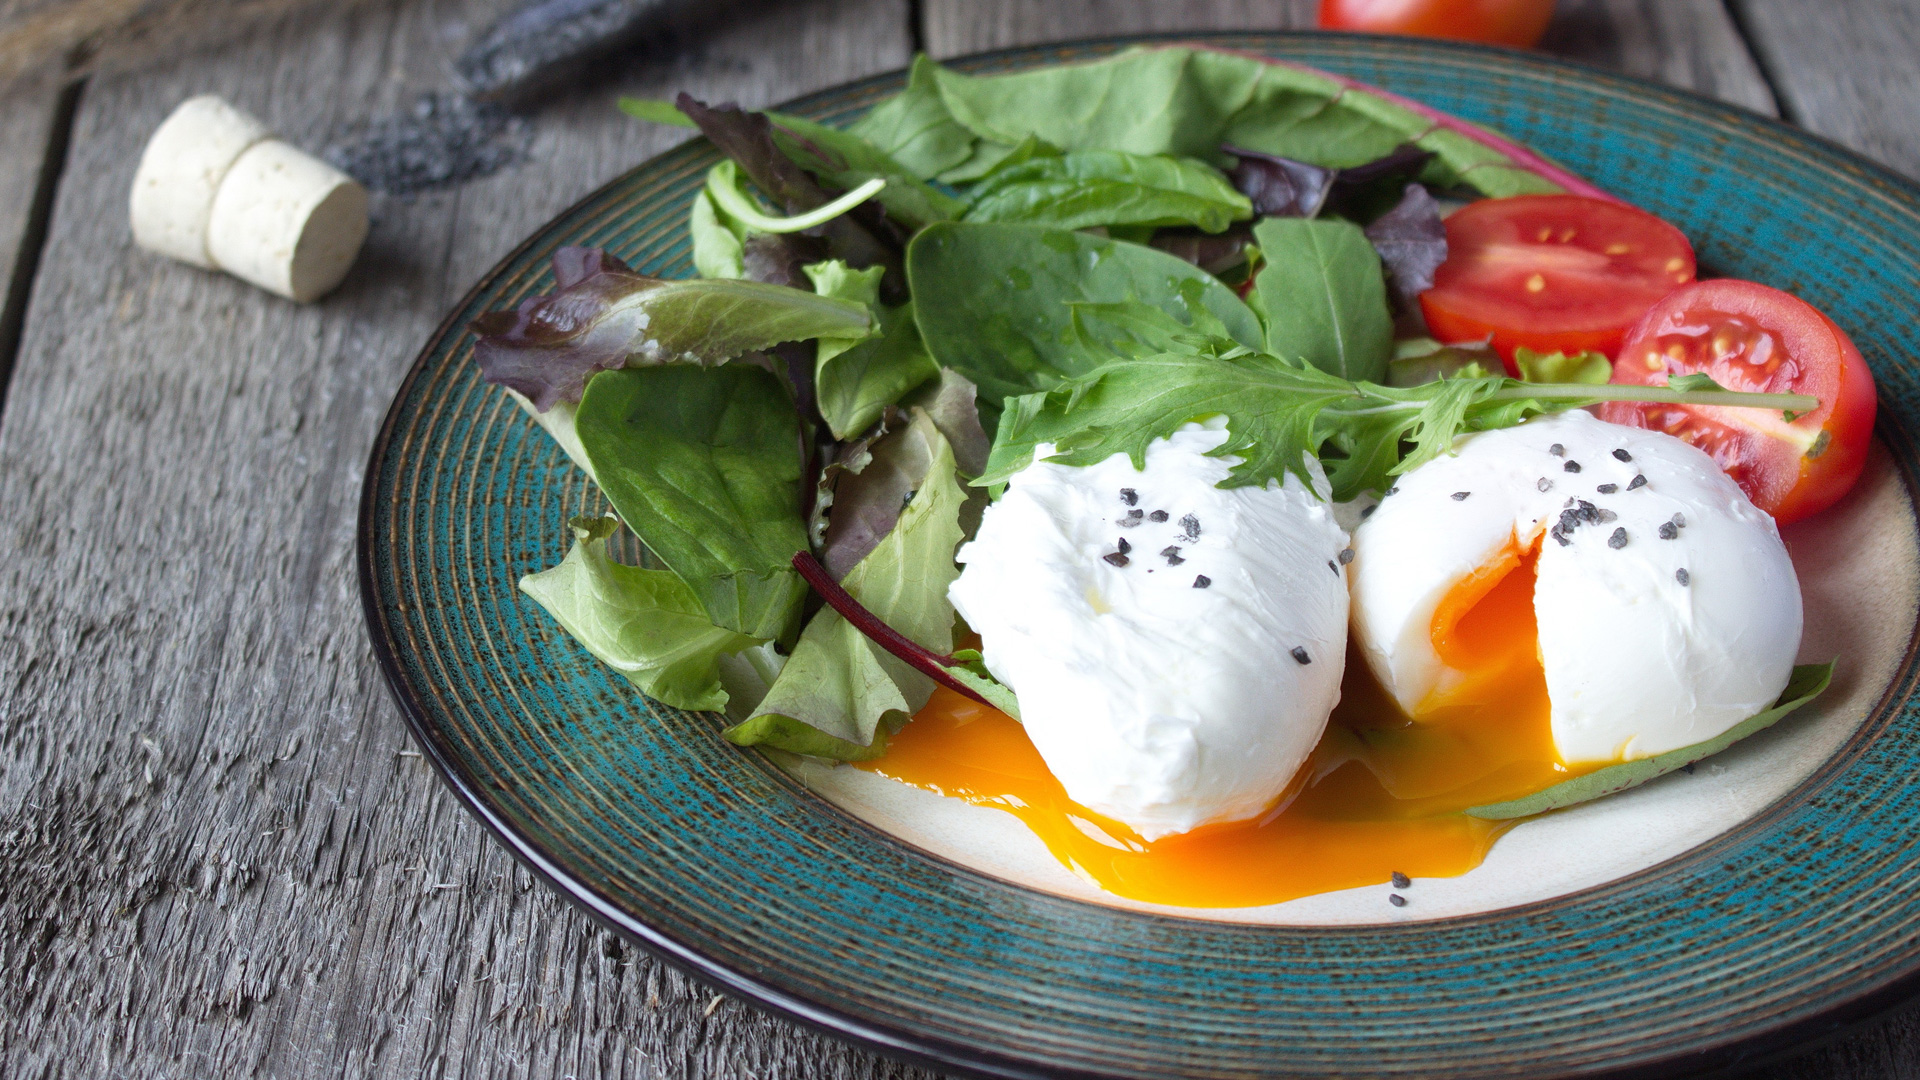 Poached eggs on plate with green salad and tomatoes